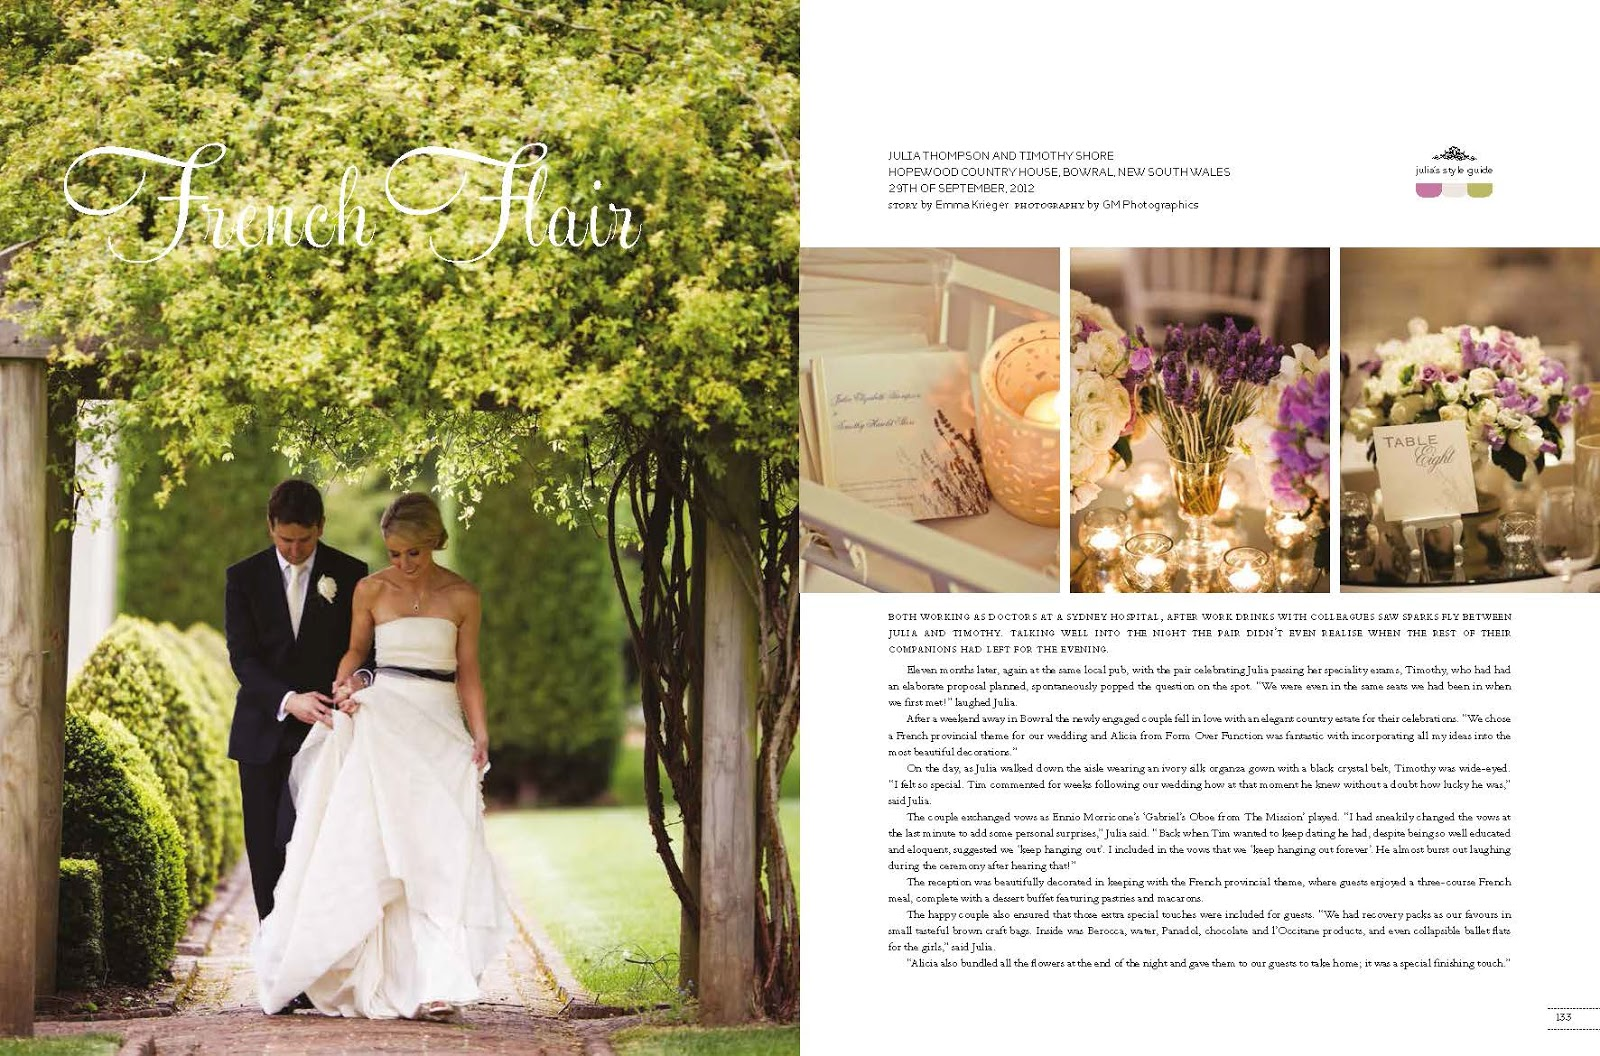 form over function featured real weddings magazine julia